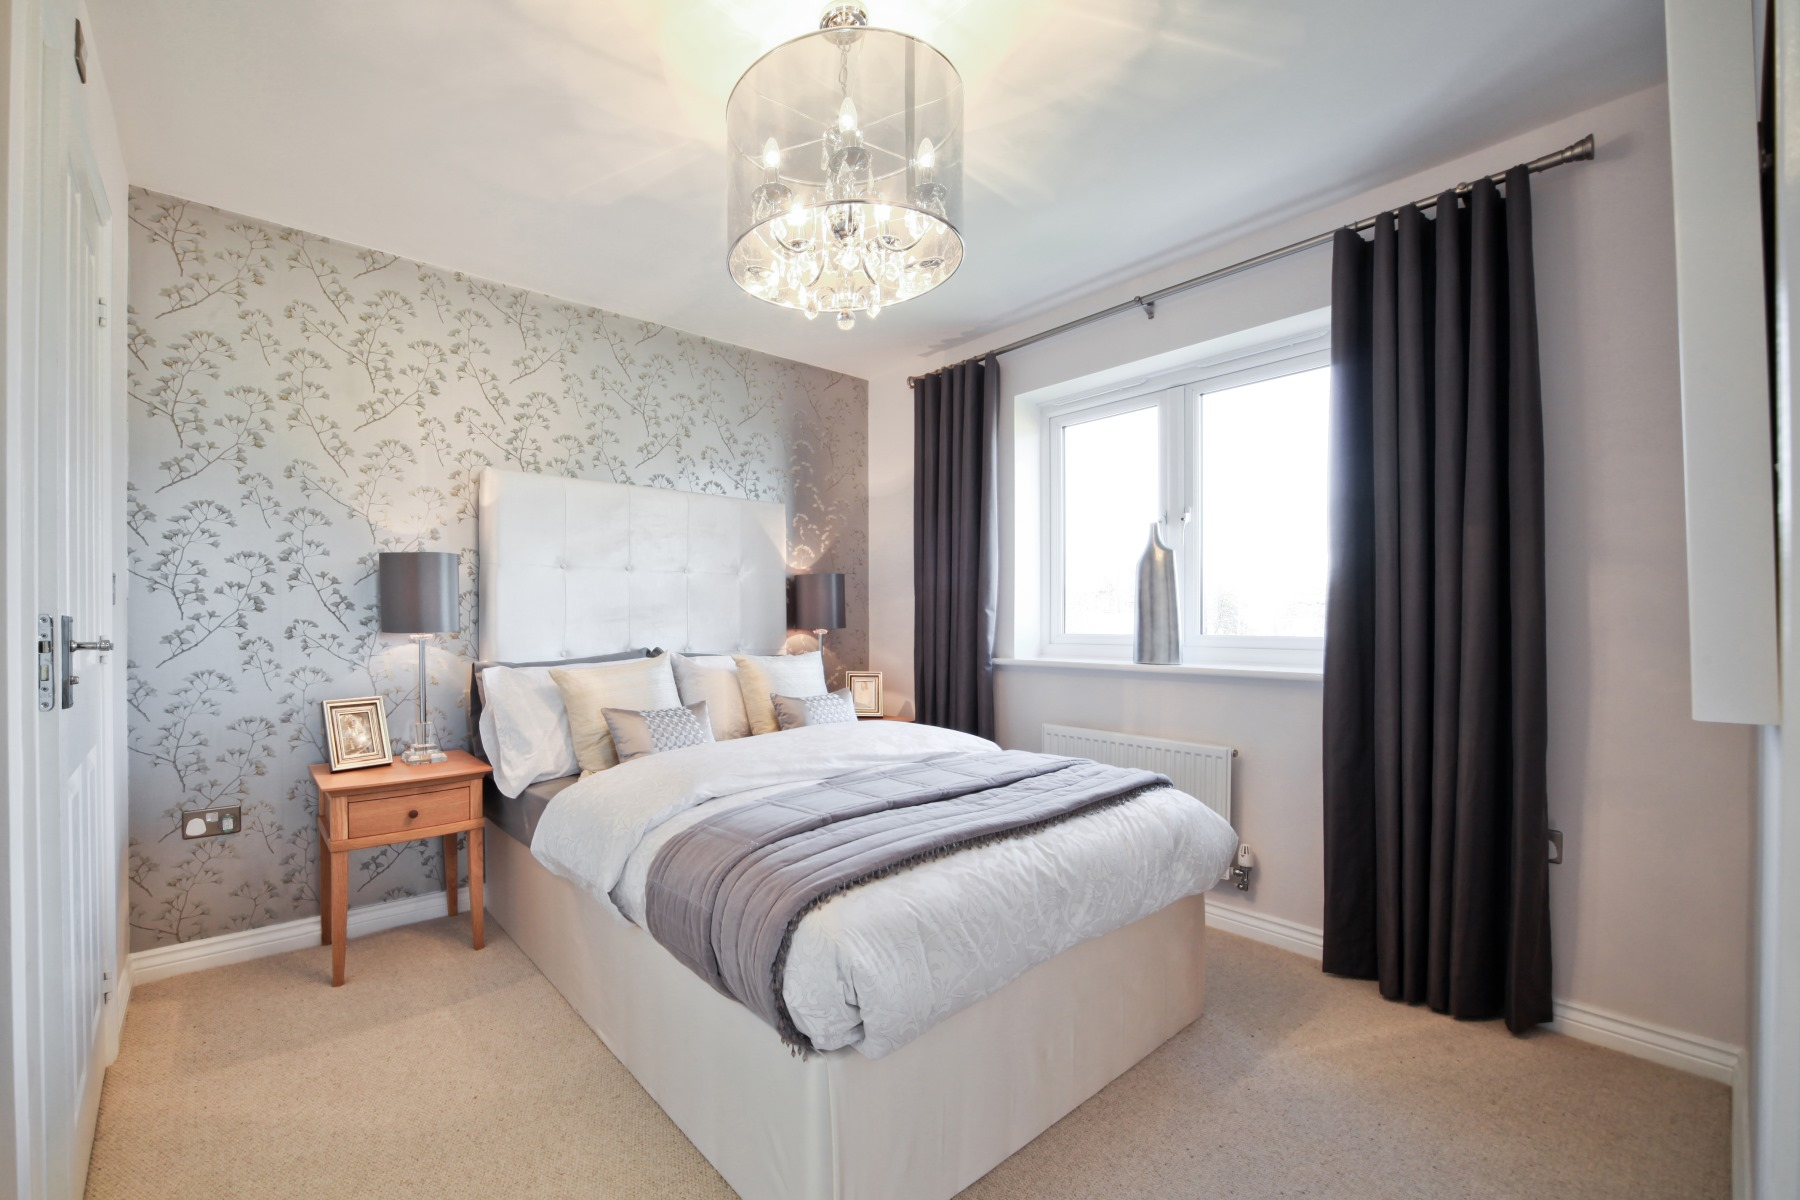 Knutsford Master Bedroom - Nightingale Gardens